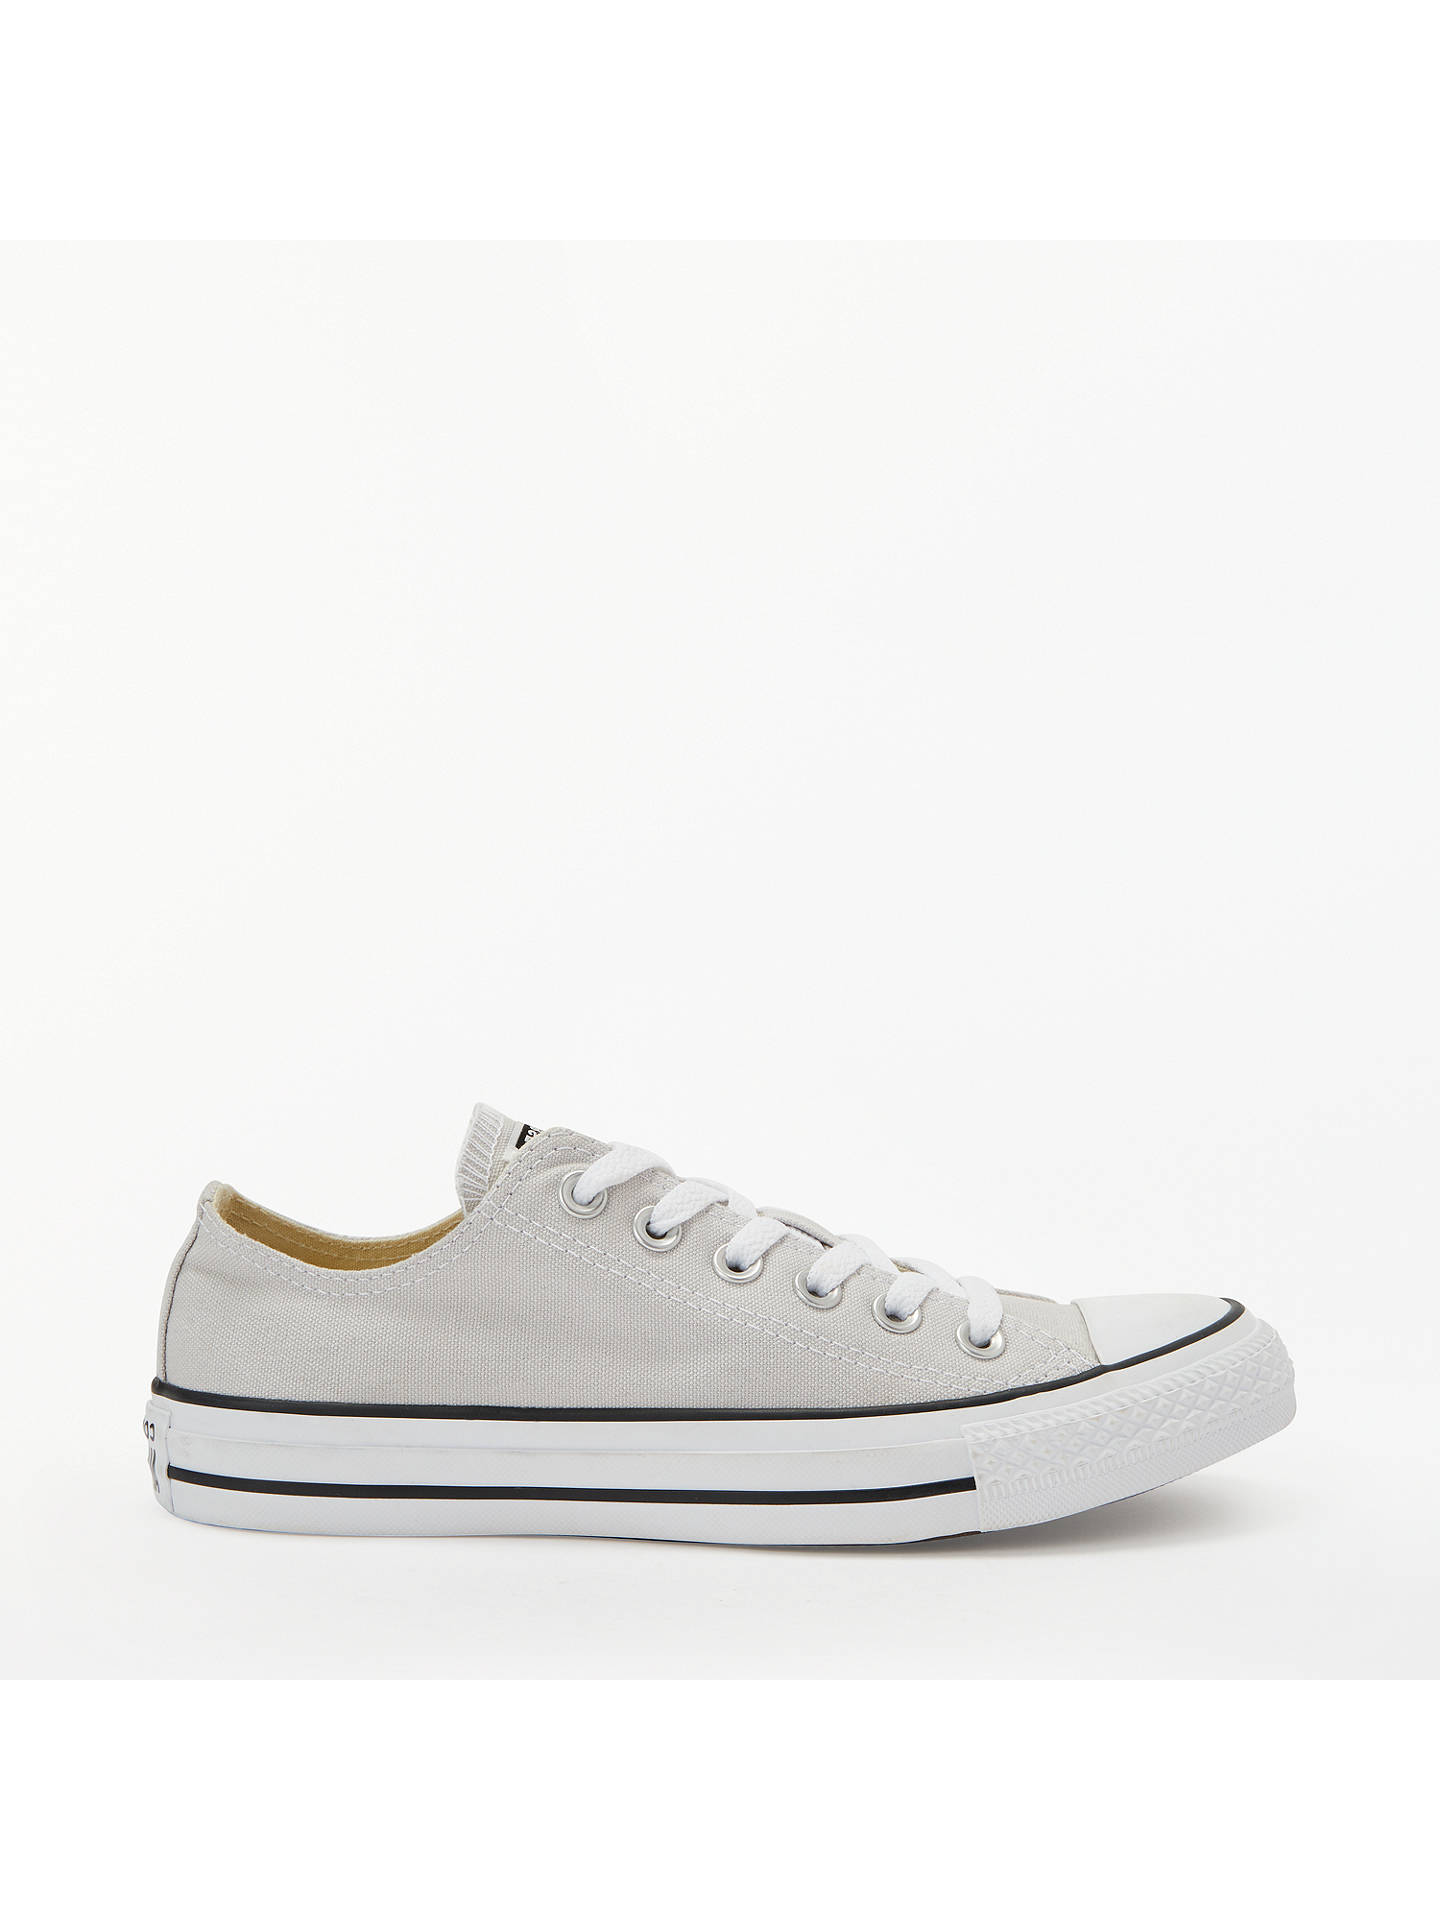 d41498deaa430e Converse Chuck Taylor All Star Women s Canvas Ox Low-Top Trainers ...